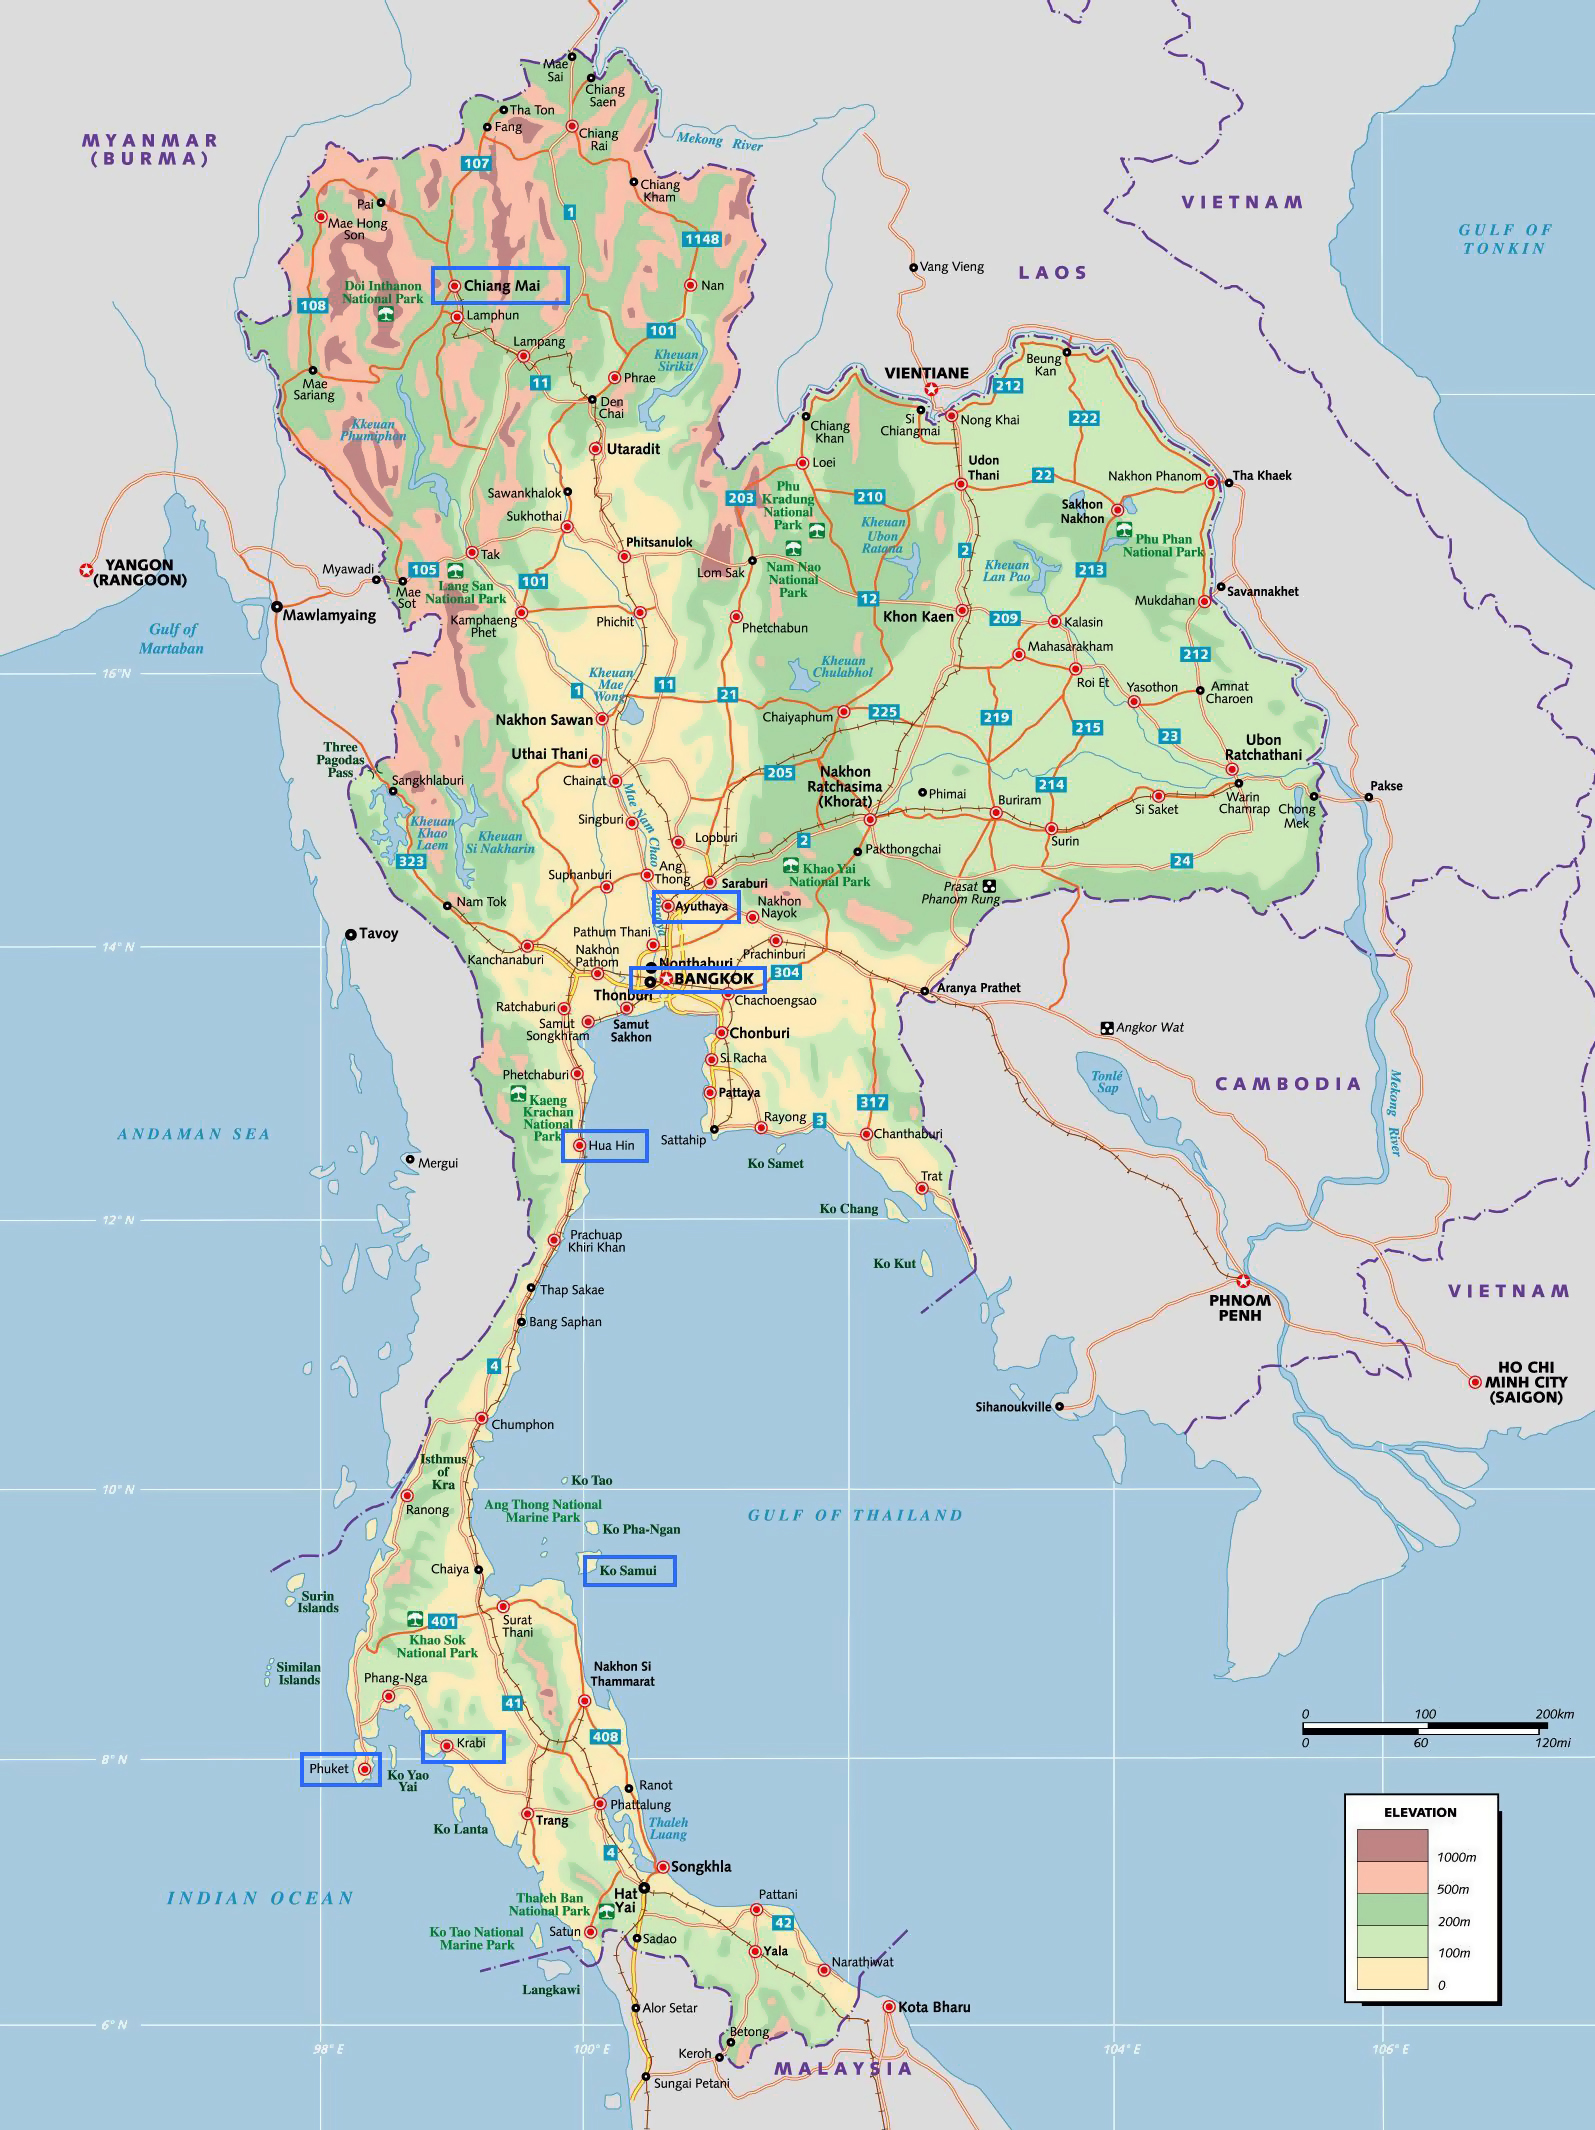 Large Elevation Map Of Thailand With Other Marks Thailand Asia